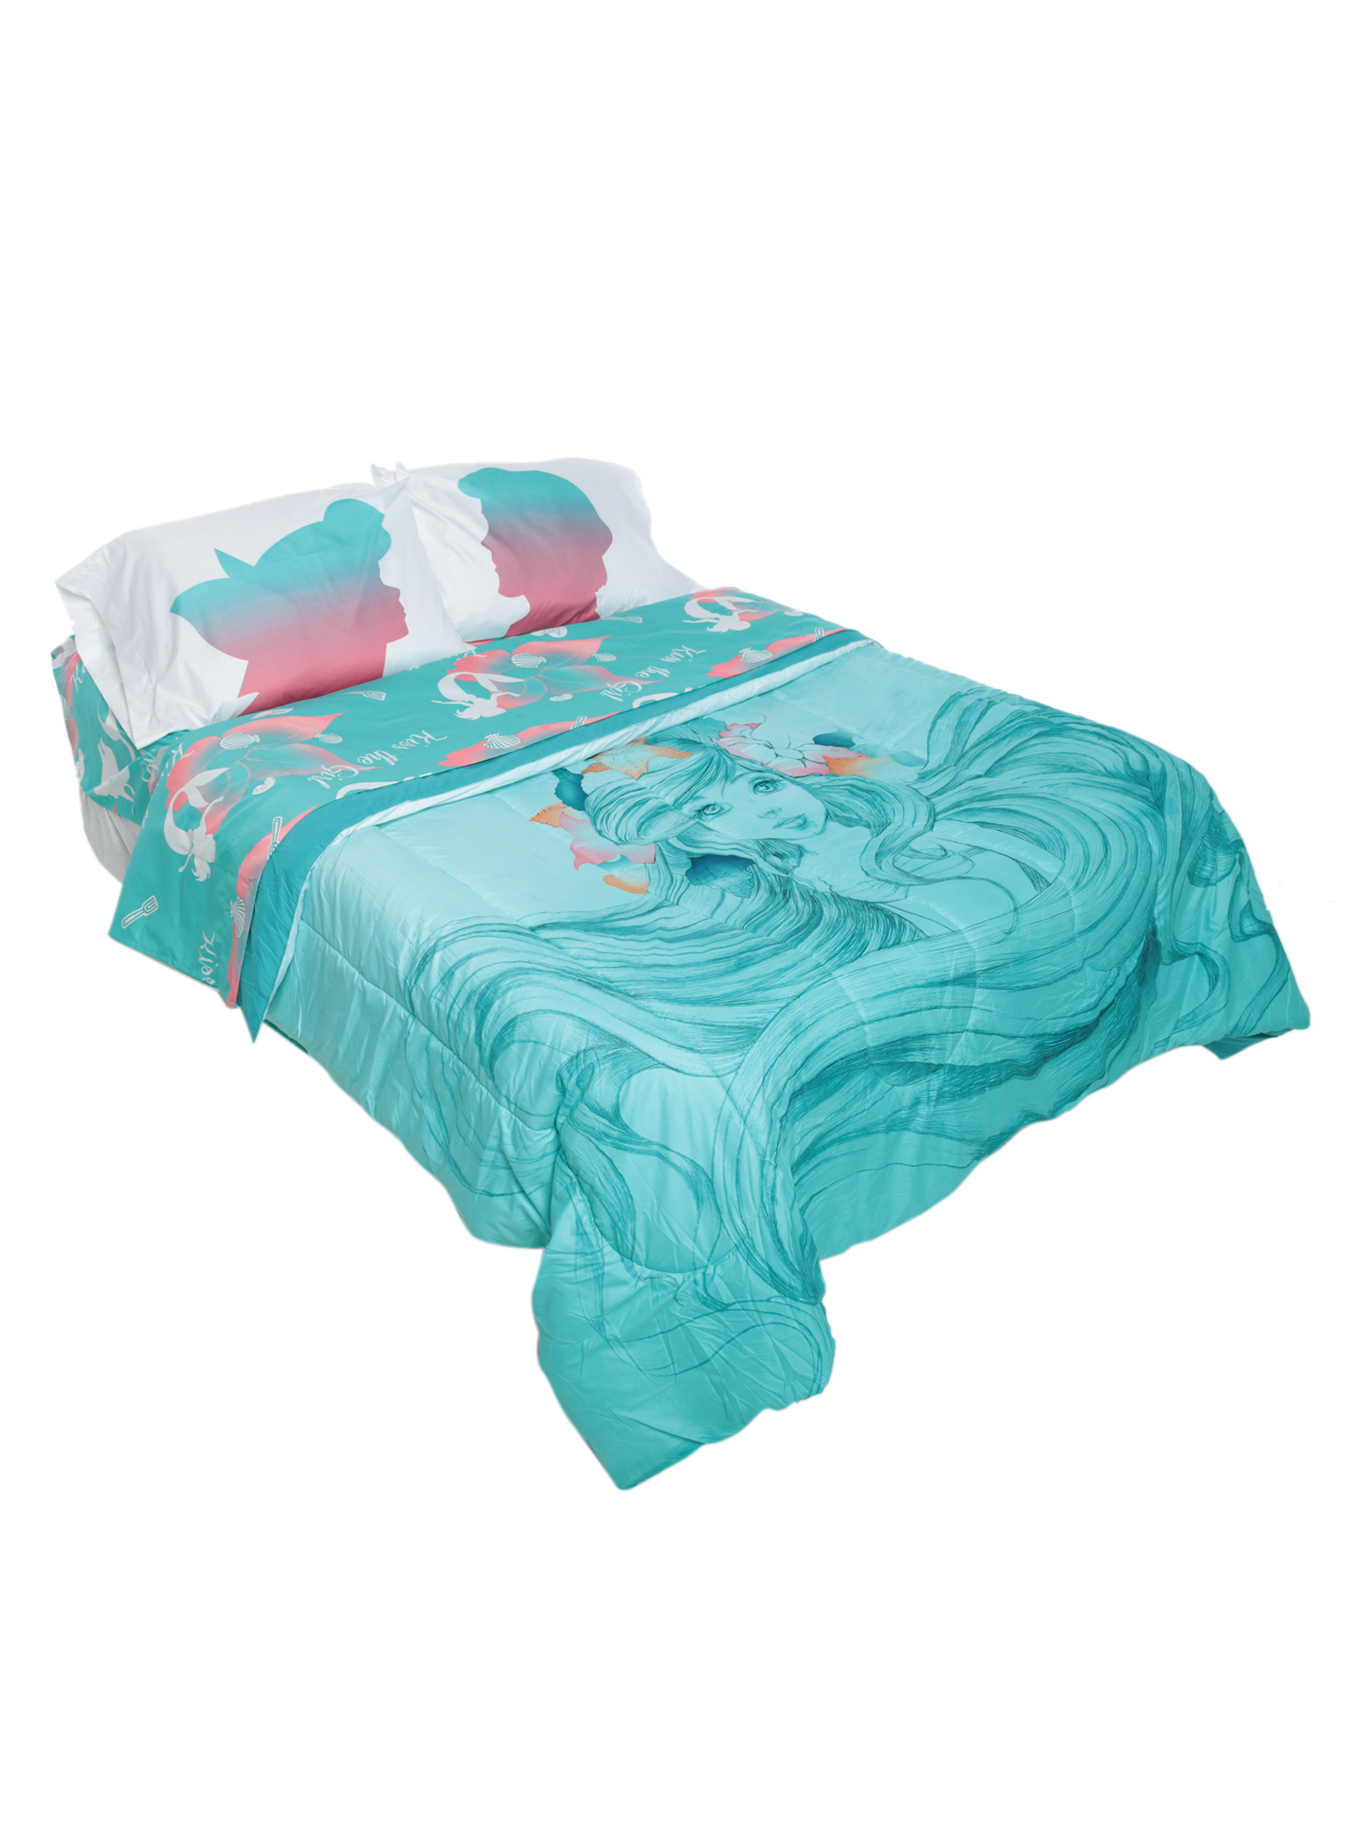 Pokemon Bed Sheets Hot Topic